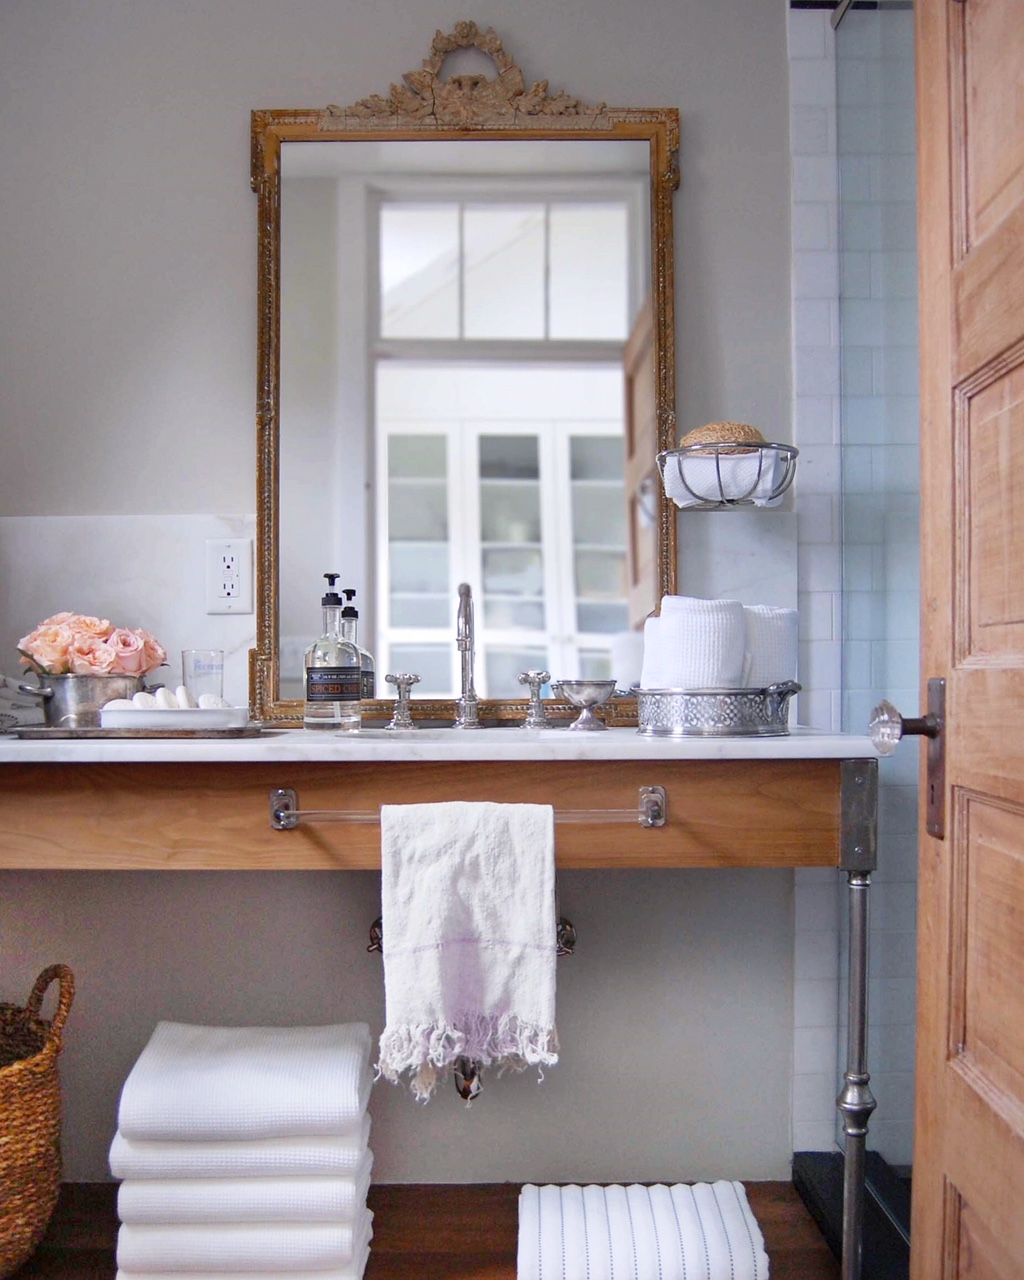 Vintage-modern bathroom in a New England beach cottage. Design by Sandra Cavallo, @oldsilvershed